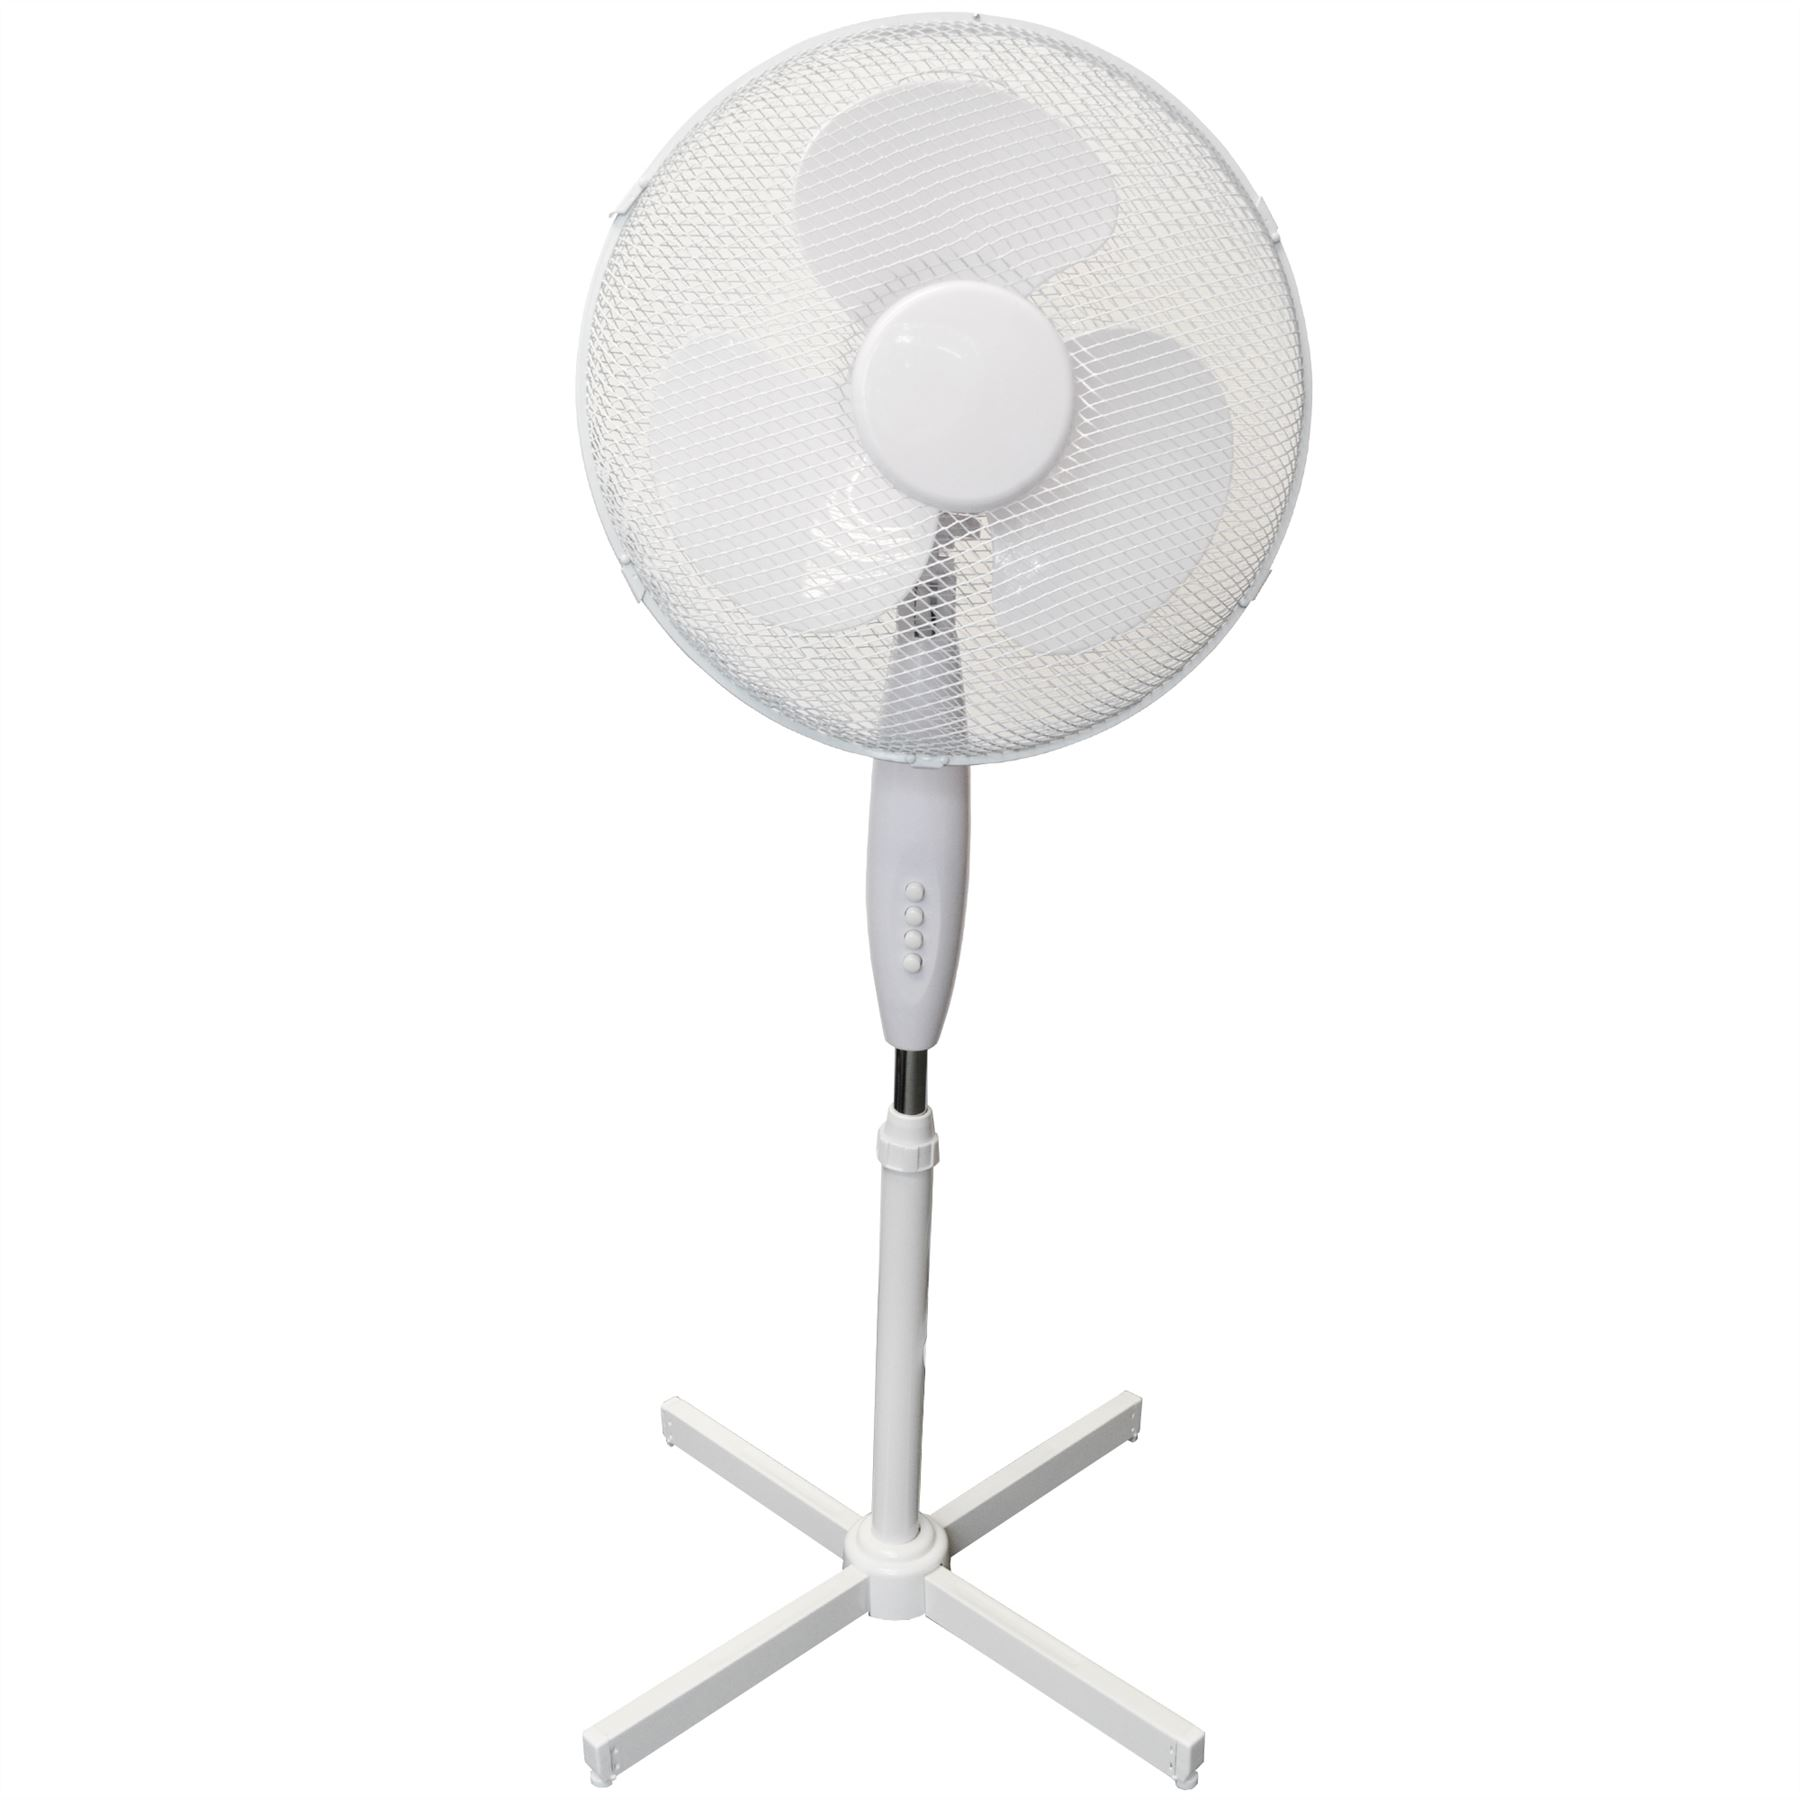 Electric Fan On A Stand : Quot inch electric oscillating table fan cooling air